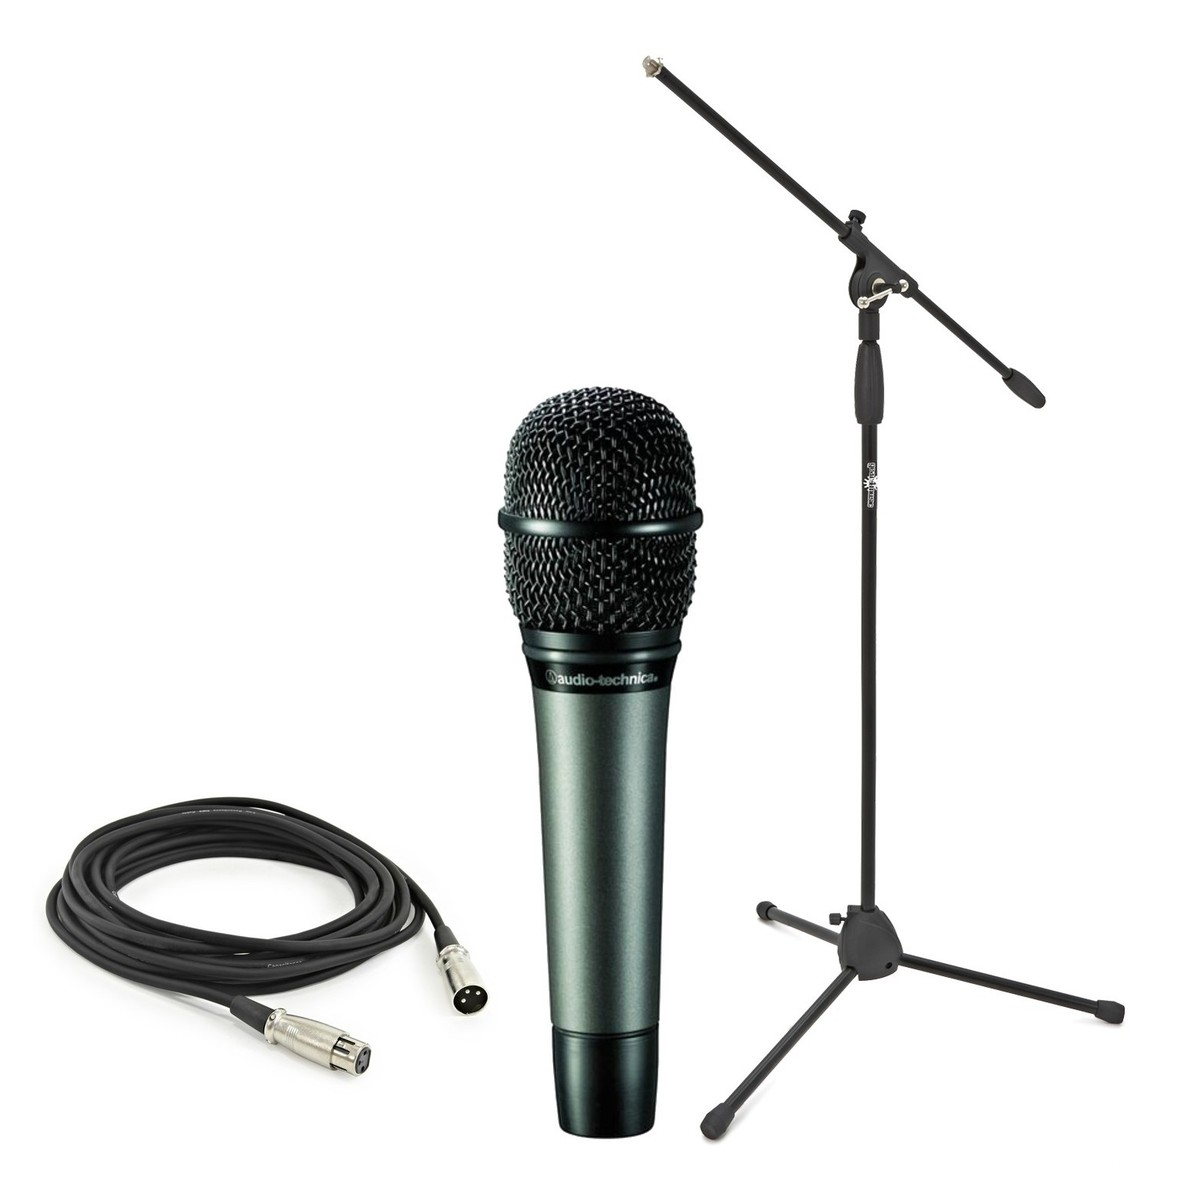 Audio Technica Atm610 With Boom Mic Stand And Cable At